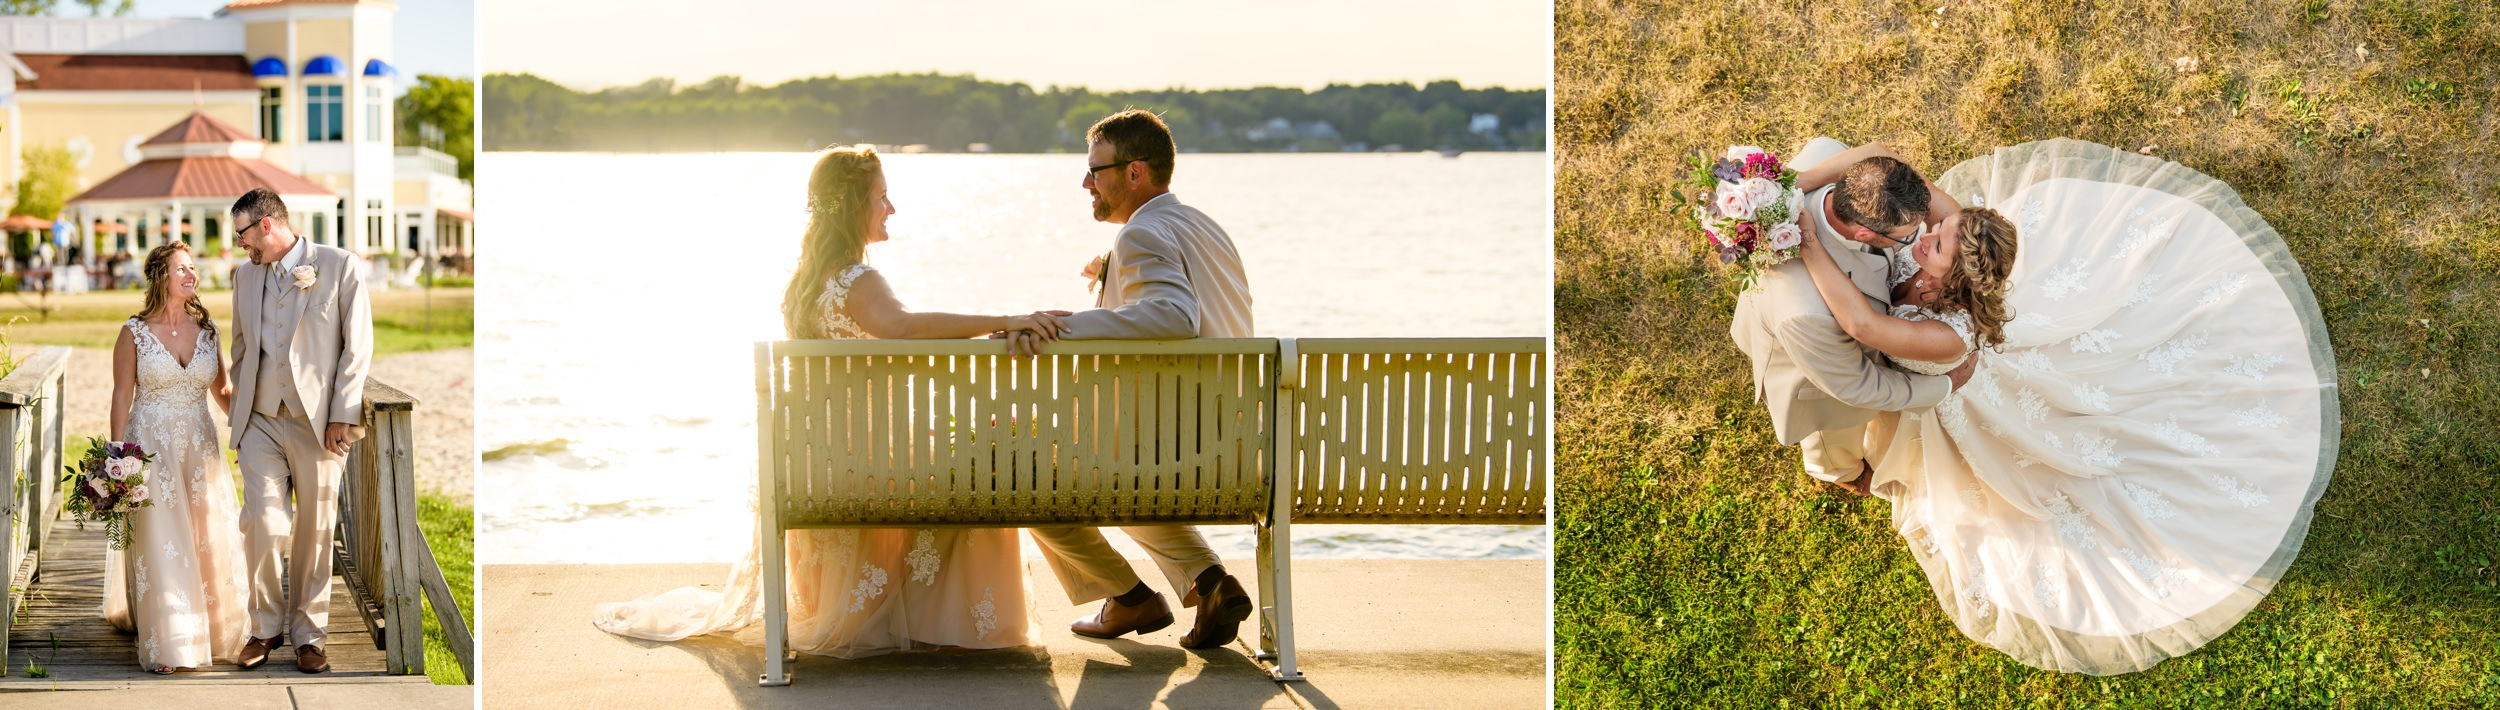 Romantic wedding photos along the lakefront at Cedar Lake.